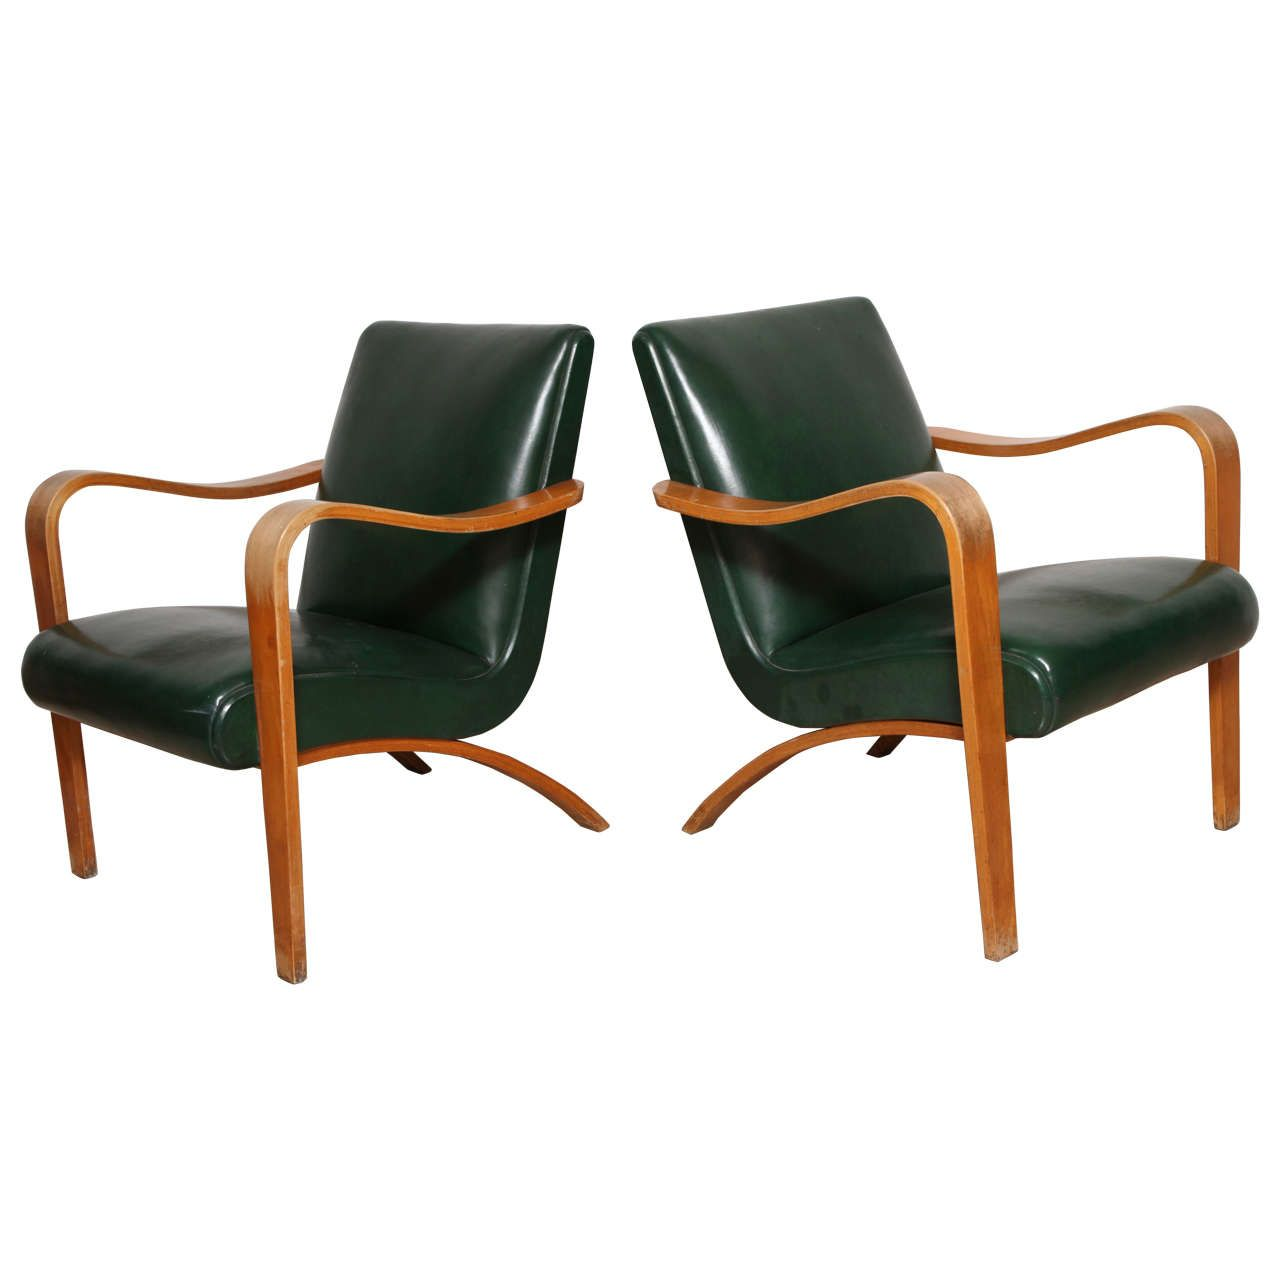 Superb Pair Of 1940S Thonet Bentwood Lounge Chairs Furniture Spiritservingveterans Wood Chair Design Ideas Spiritservingveteransorg